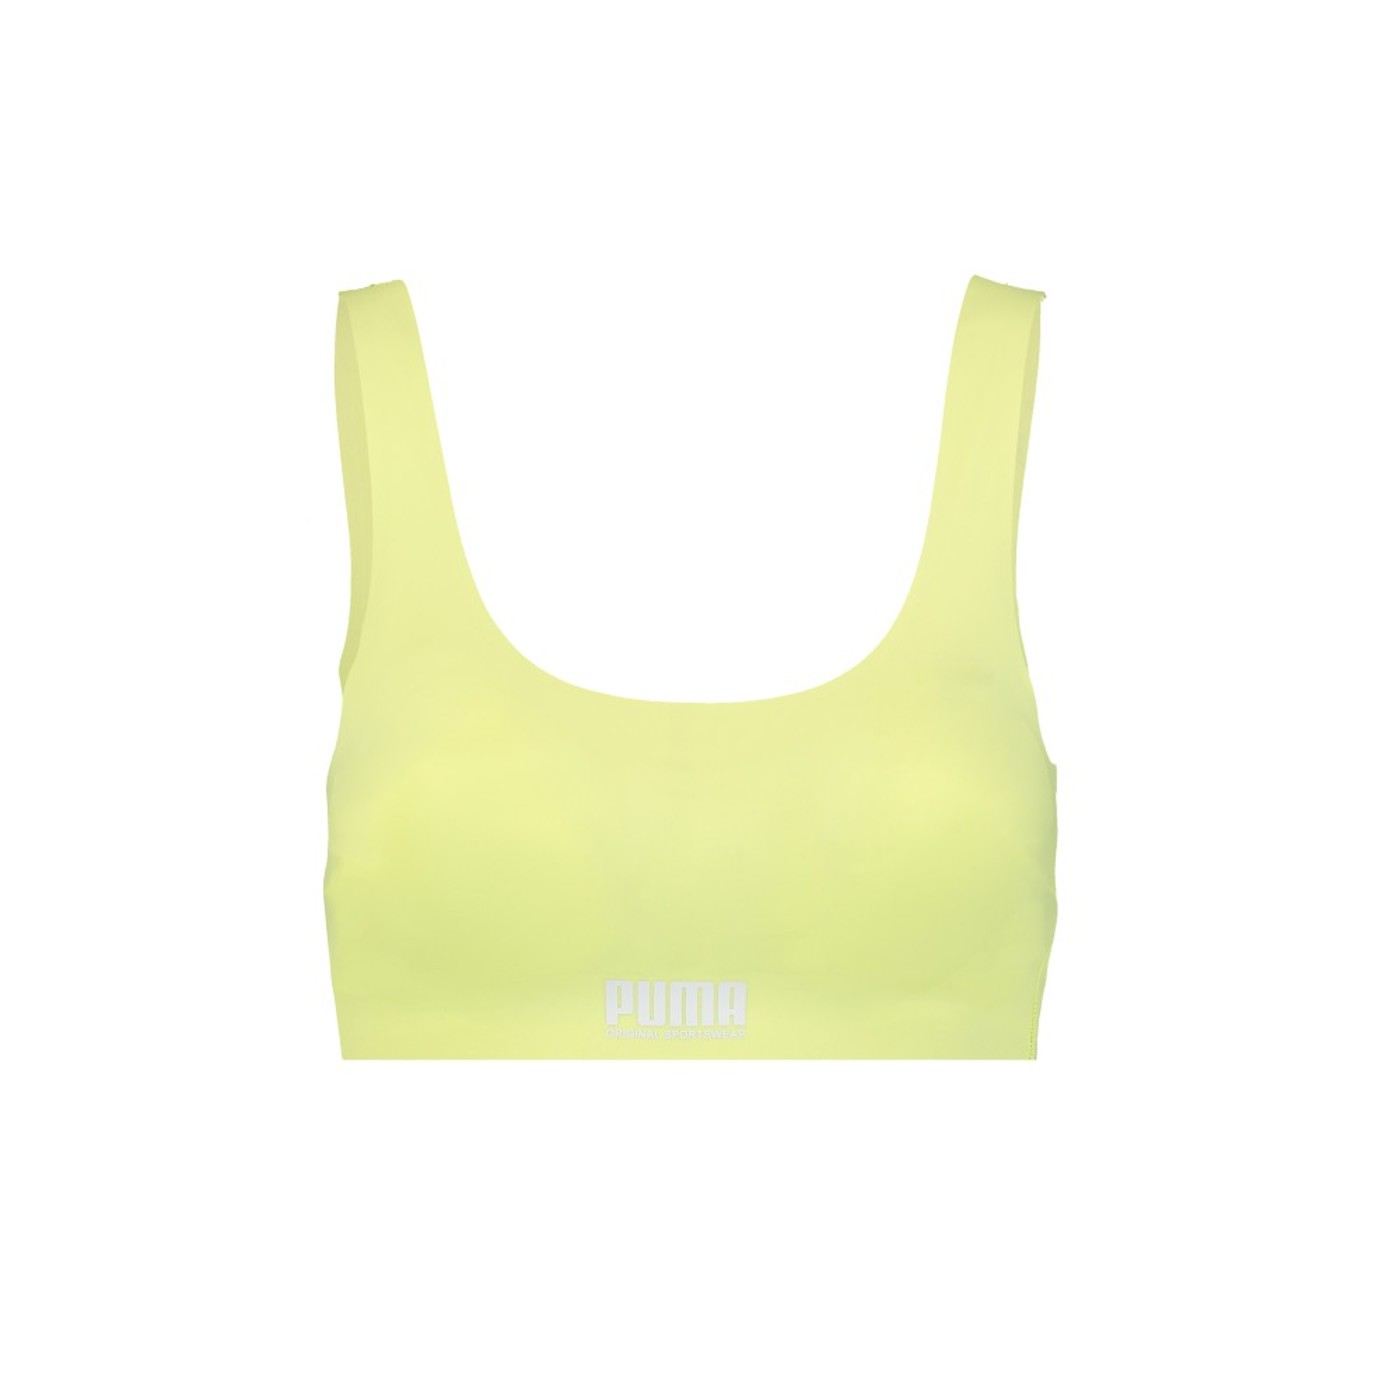 PUMA SPORTY PADDED TOP 1 - Damen